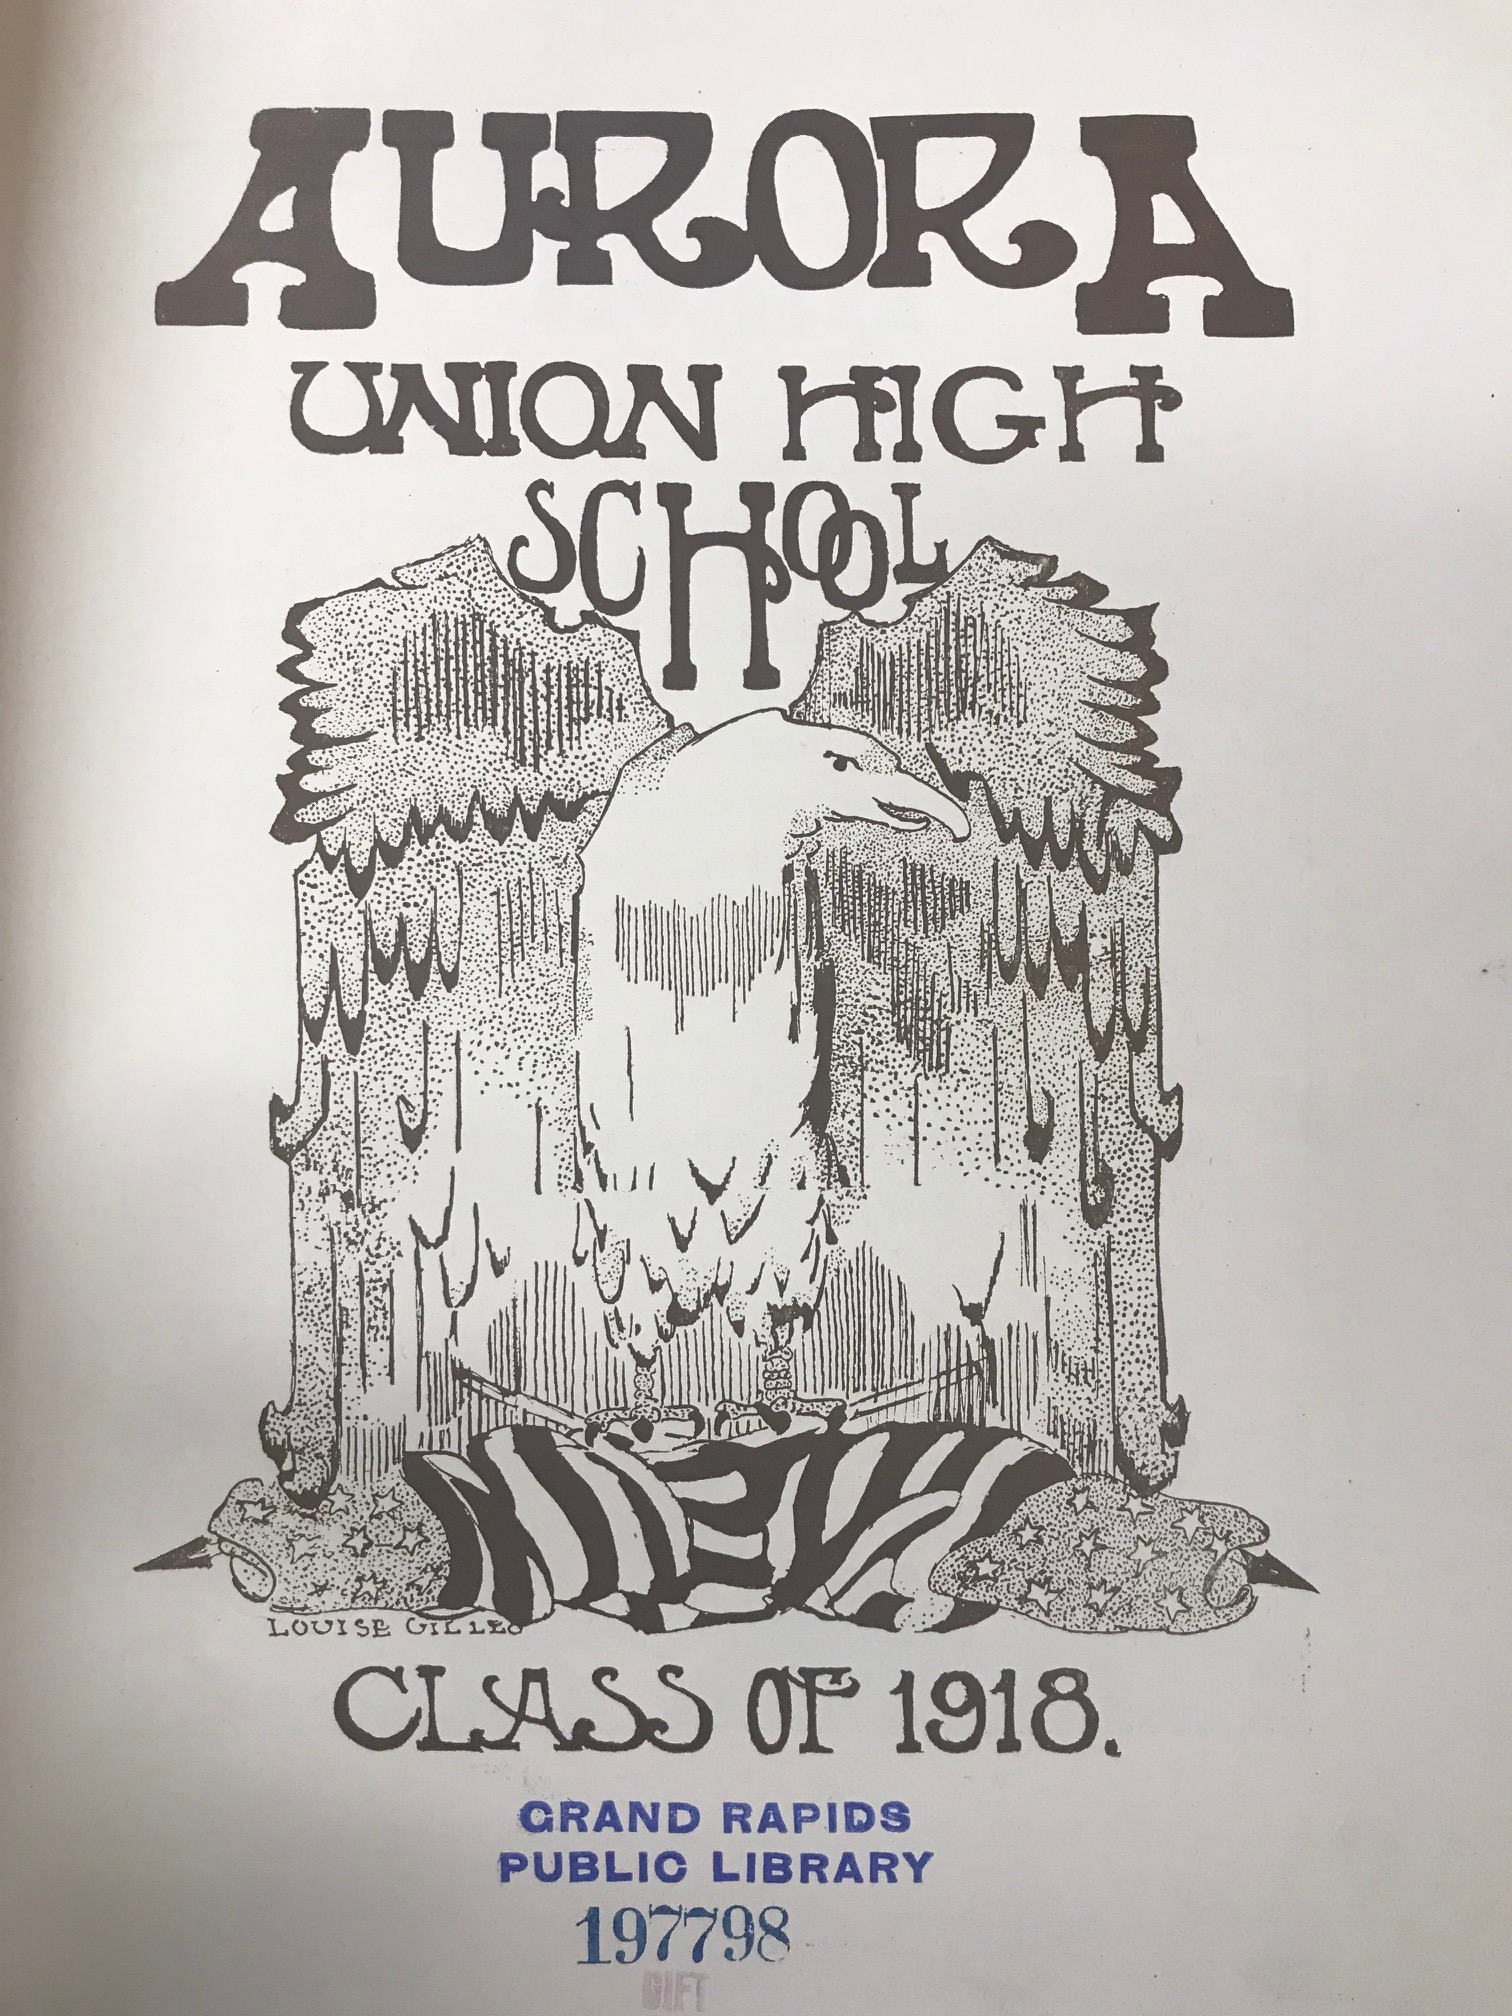 1918 Union High School Yearbook Illustration by Louise Gilleo. Courtesy History and Special Collections Department, Grand Rapids Public Library. Photograph by Pam VanderPloeg.